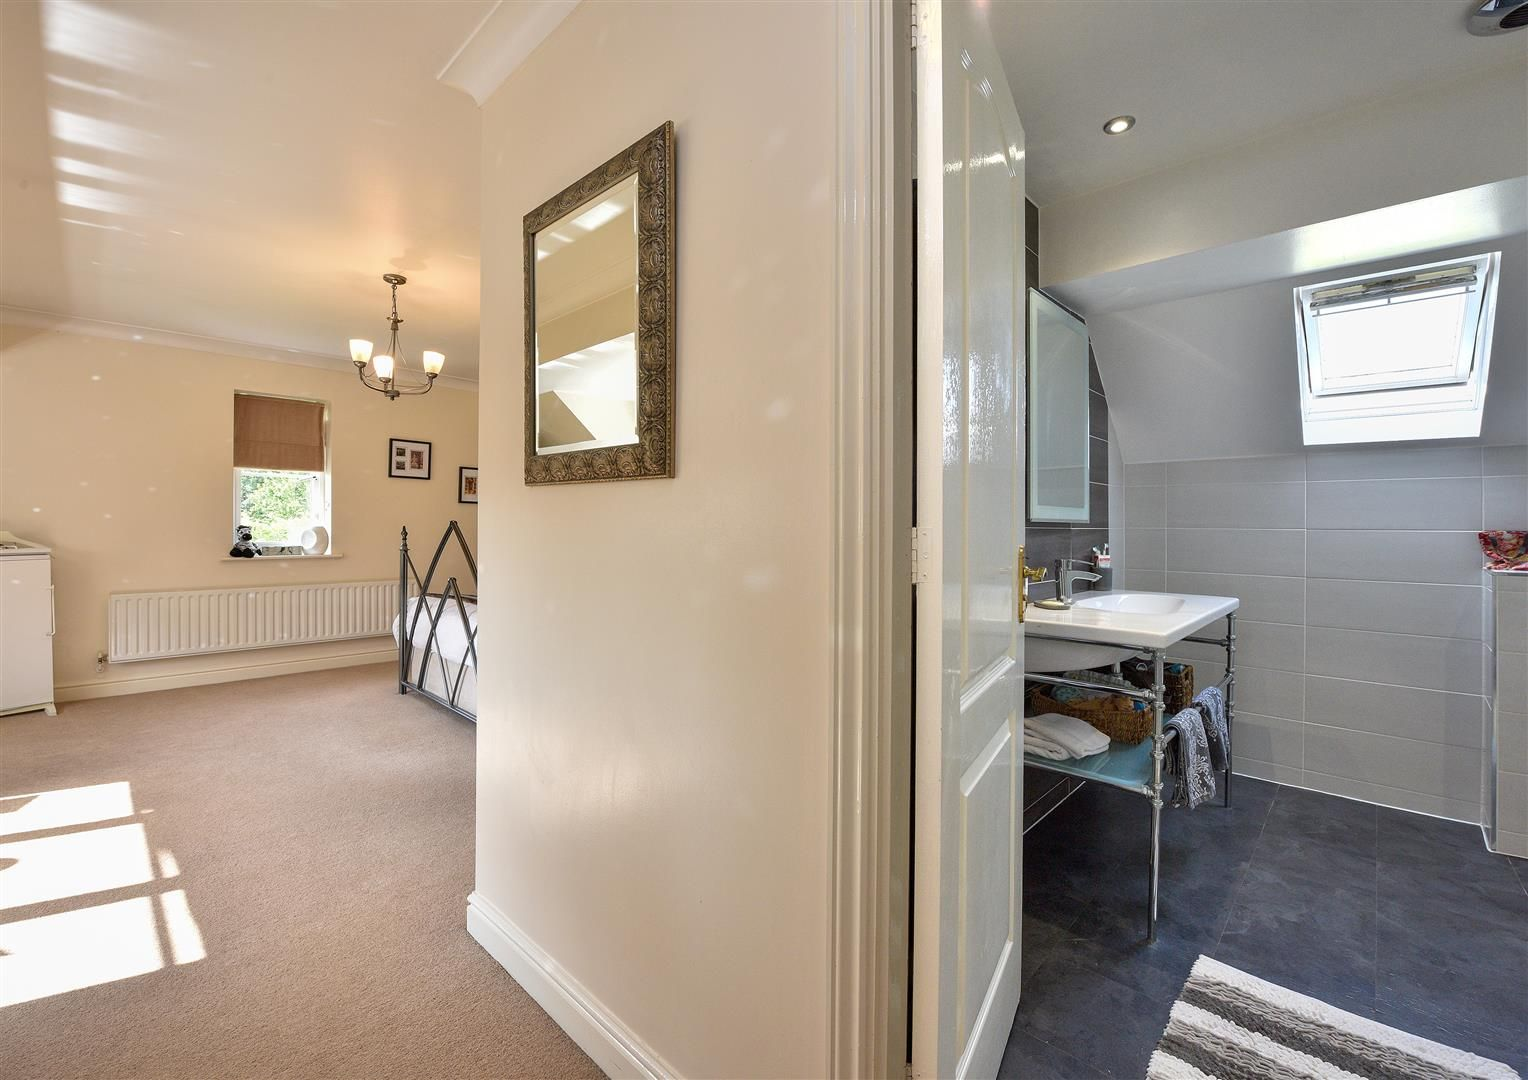 5 bed house for sale in Hagley  - Property Image 29